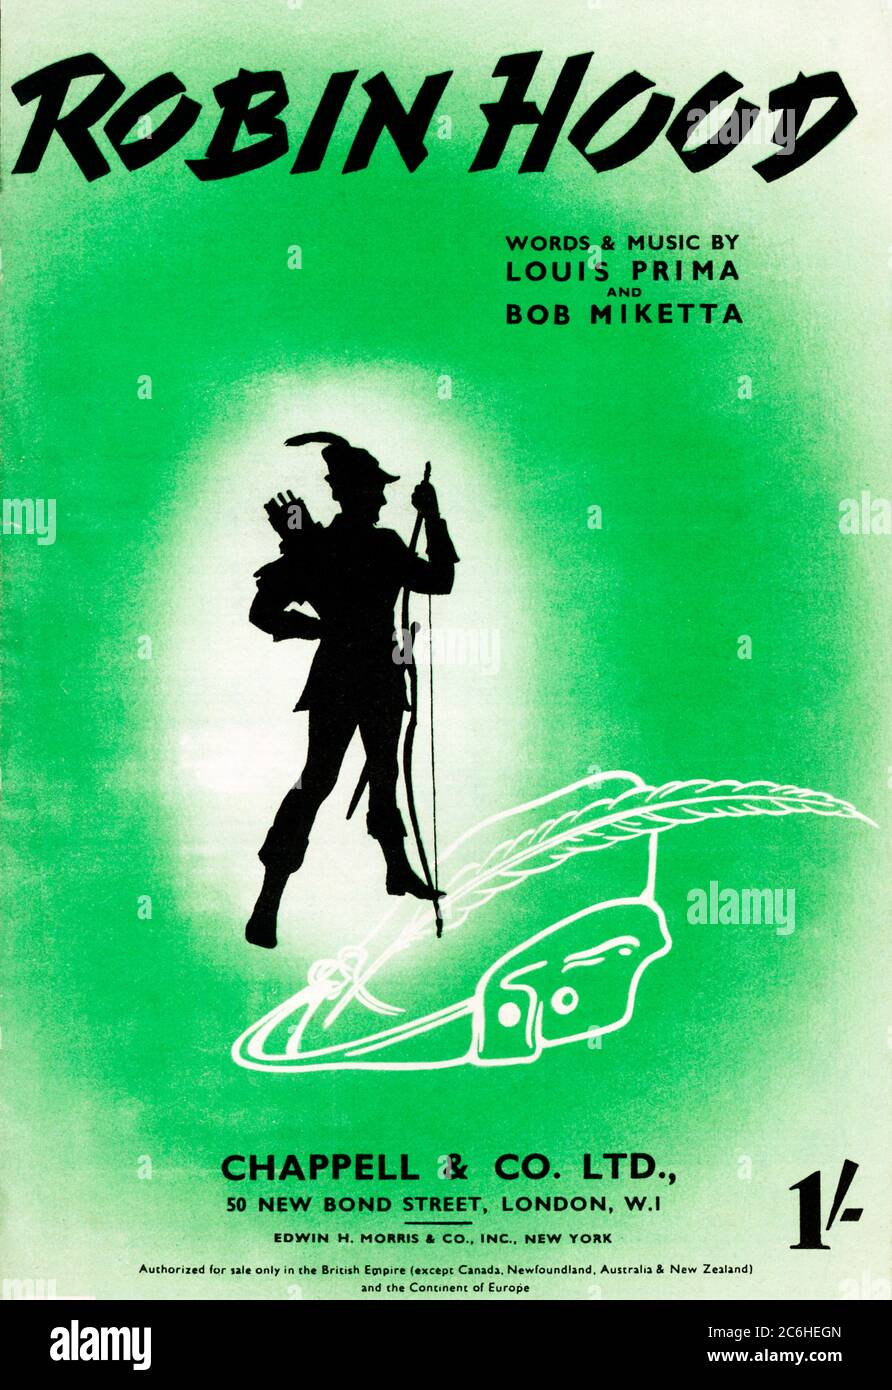 Robin Hood, 1944 music sheet for the song by Louis Prima and Bob Miketta Stock Photo